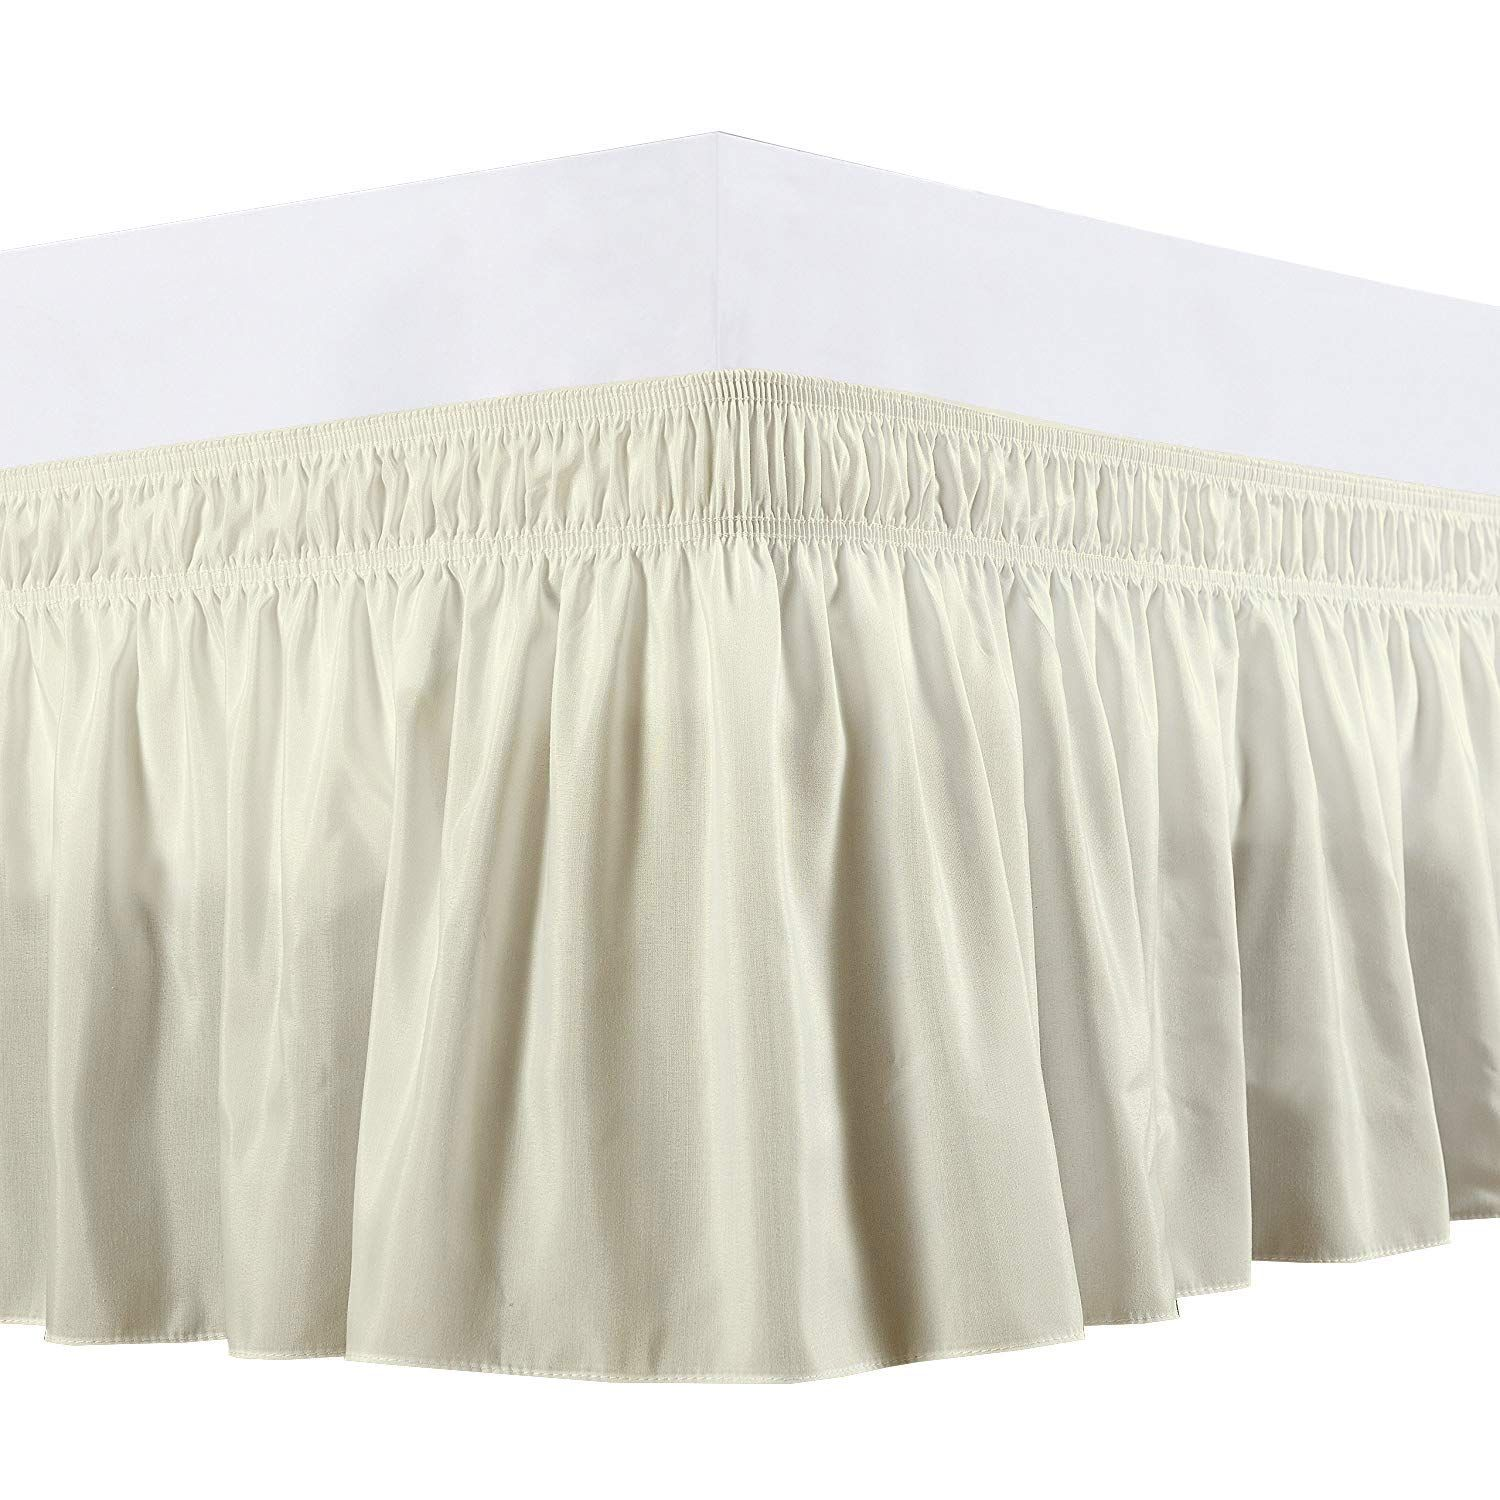 White Sheer Cotton Voile Ruffled Bed Skirt Dust Ruffle 15 Or 18 Drop Twin Full Queen King White Bed Skirt Bedskirt Greenland Home Fashions